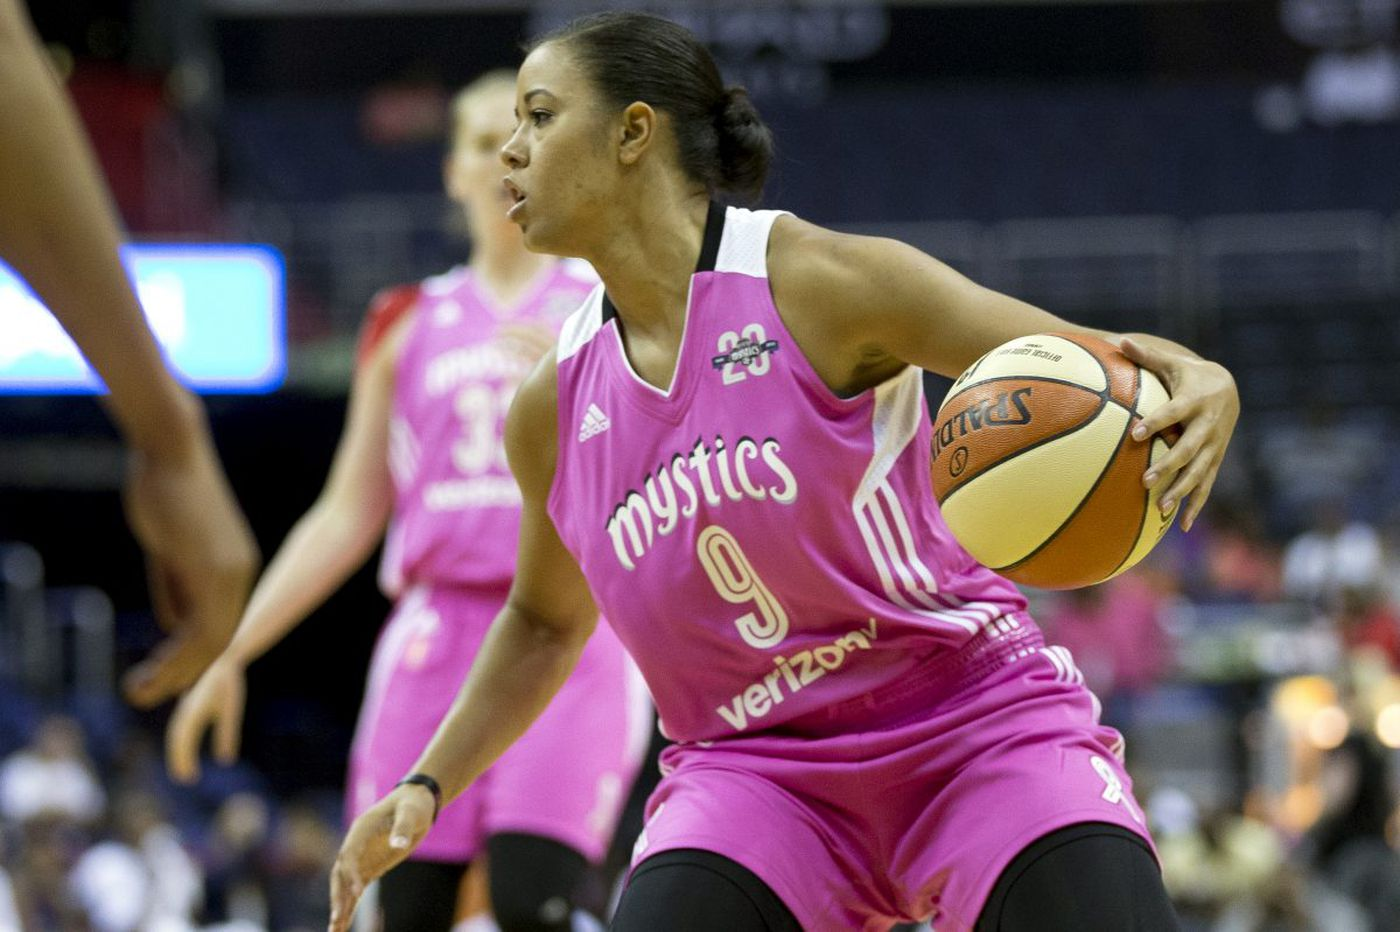 The WNBA's Natasha Cloud and a voice that carries